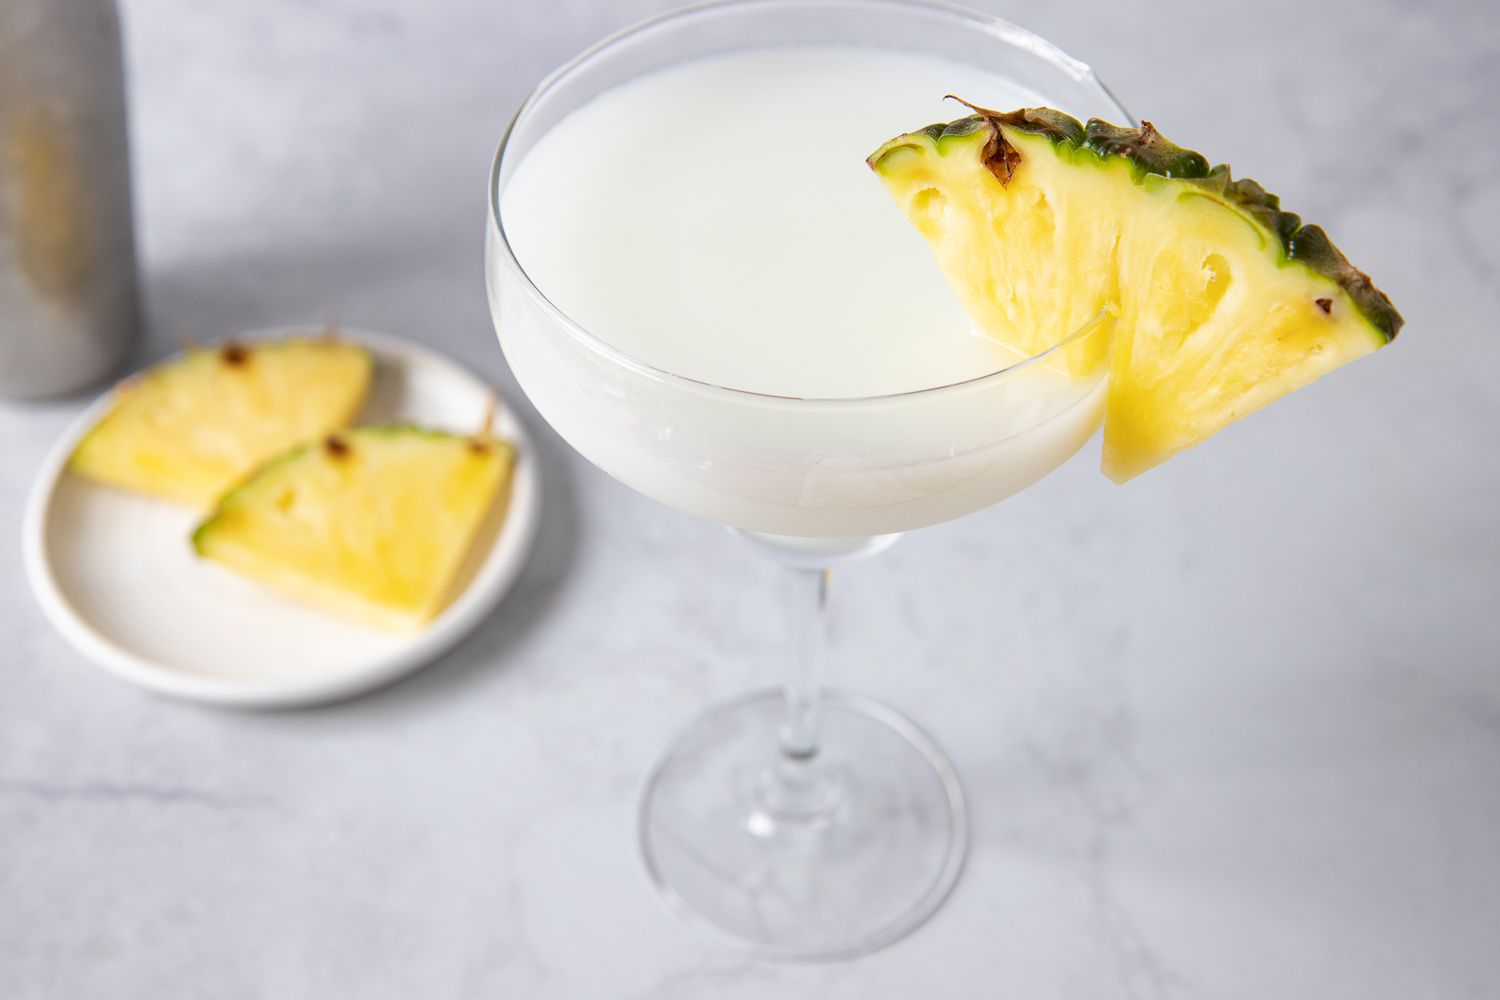 Coco Margarita garnished with a pineapple